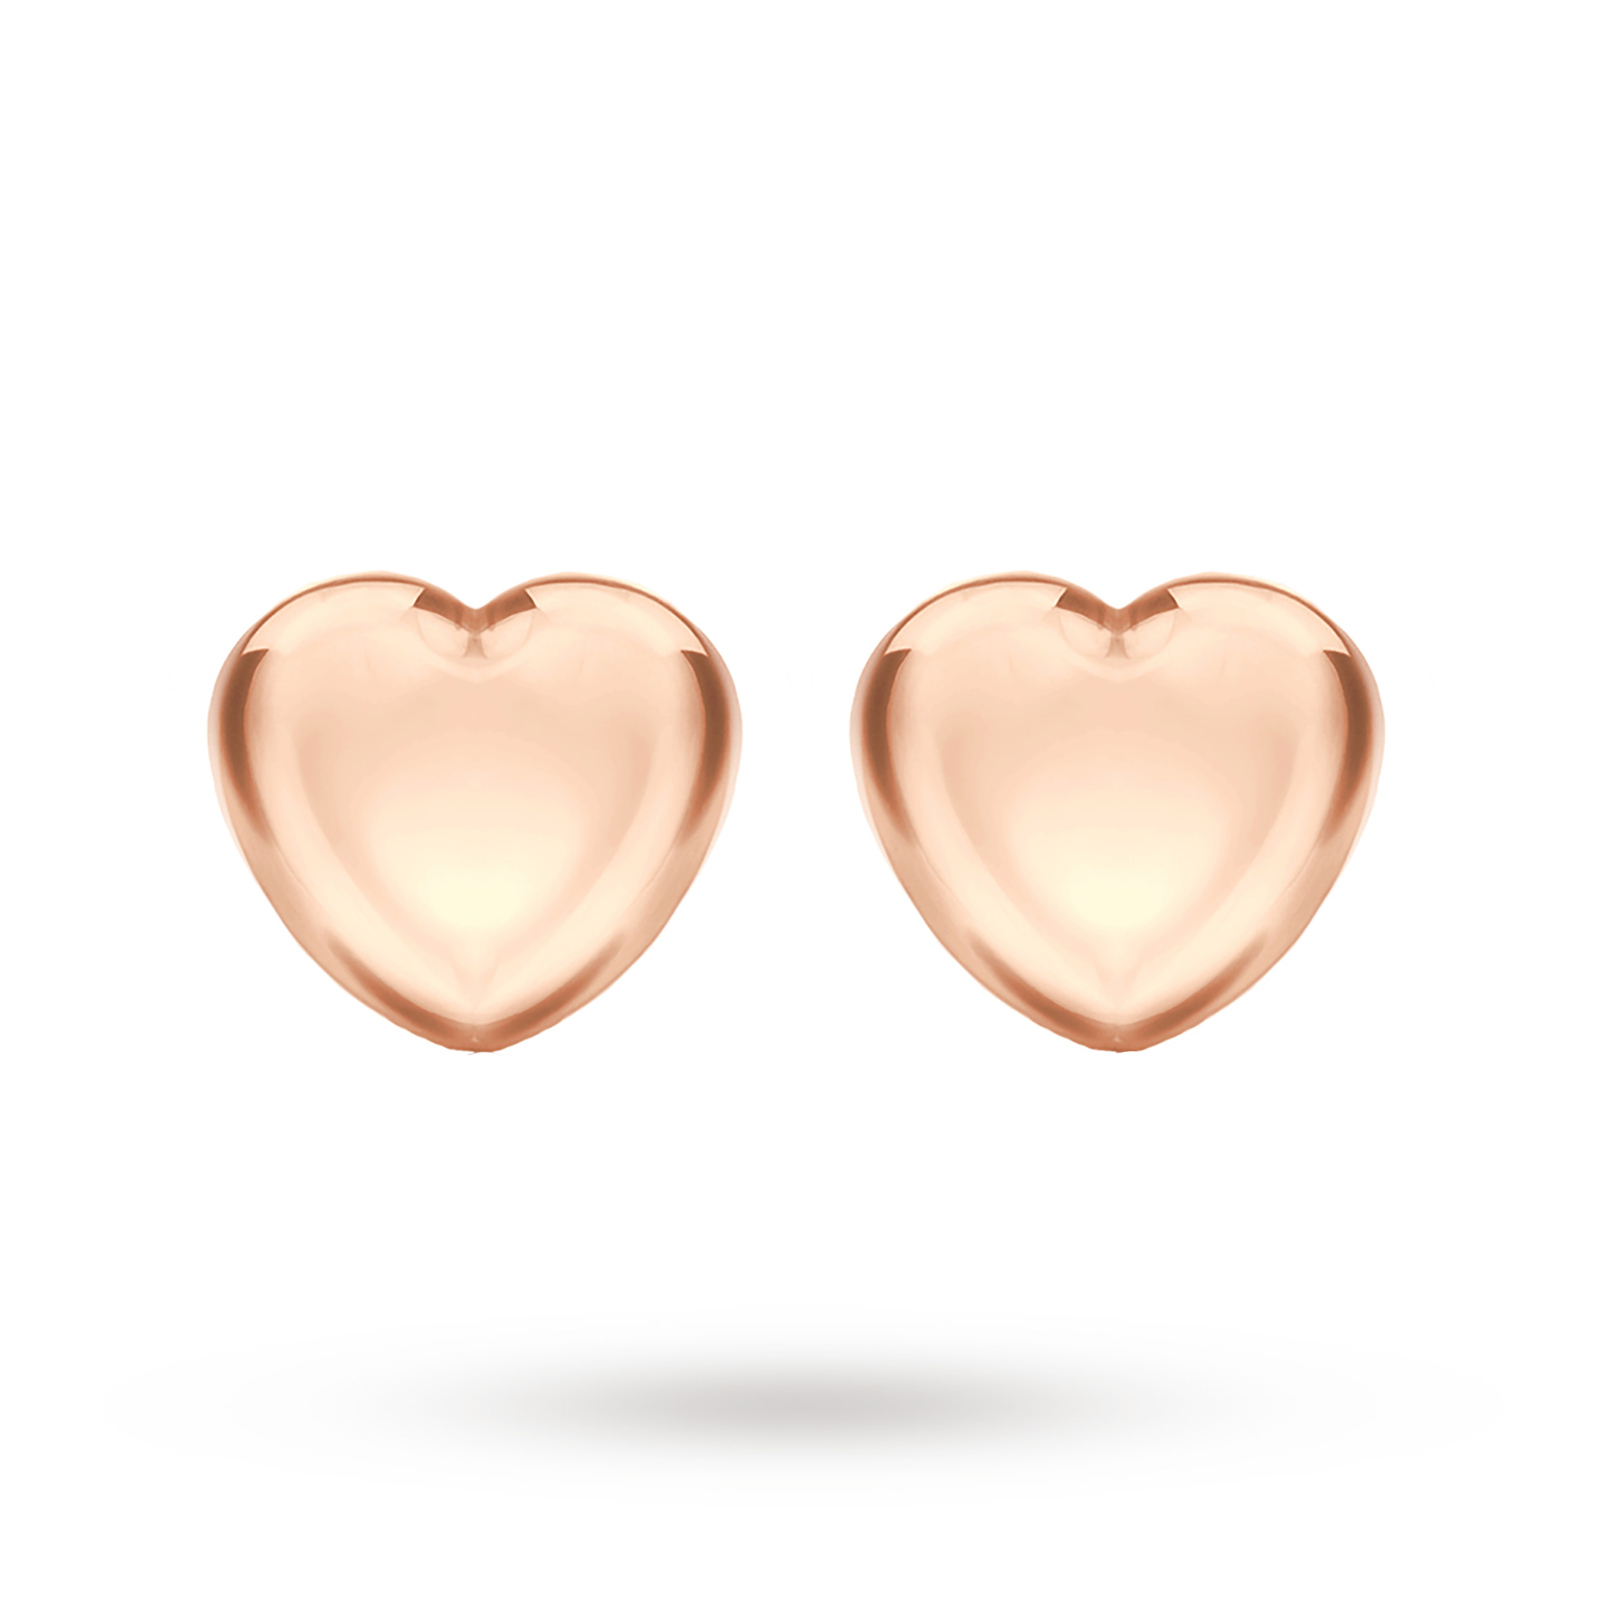 sample heart maison jewelry stud a tiny classic earrings miru studs products our item maisonmiru